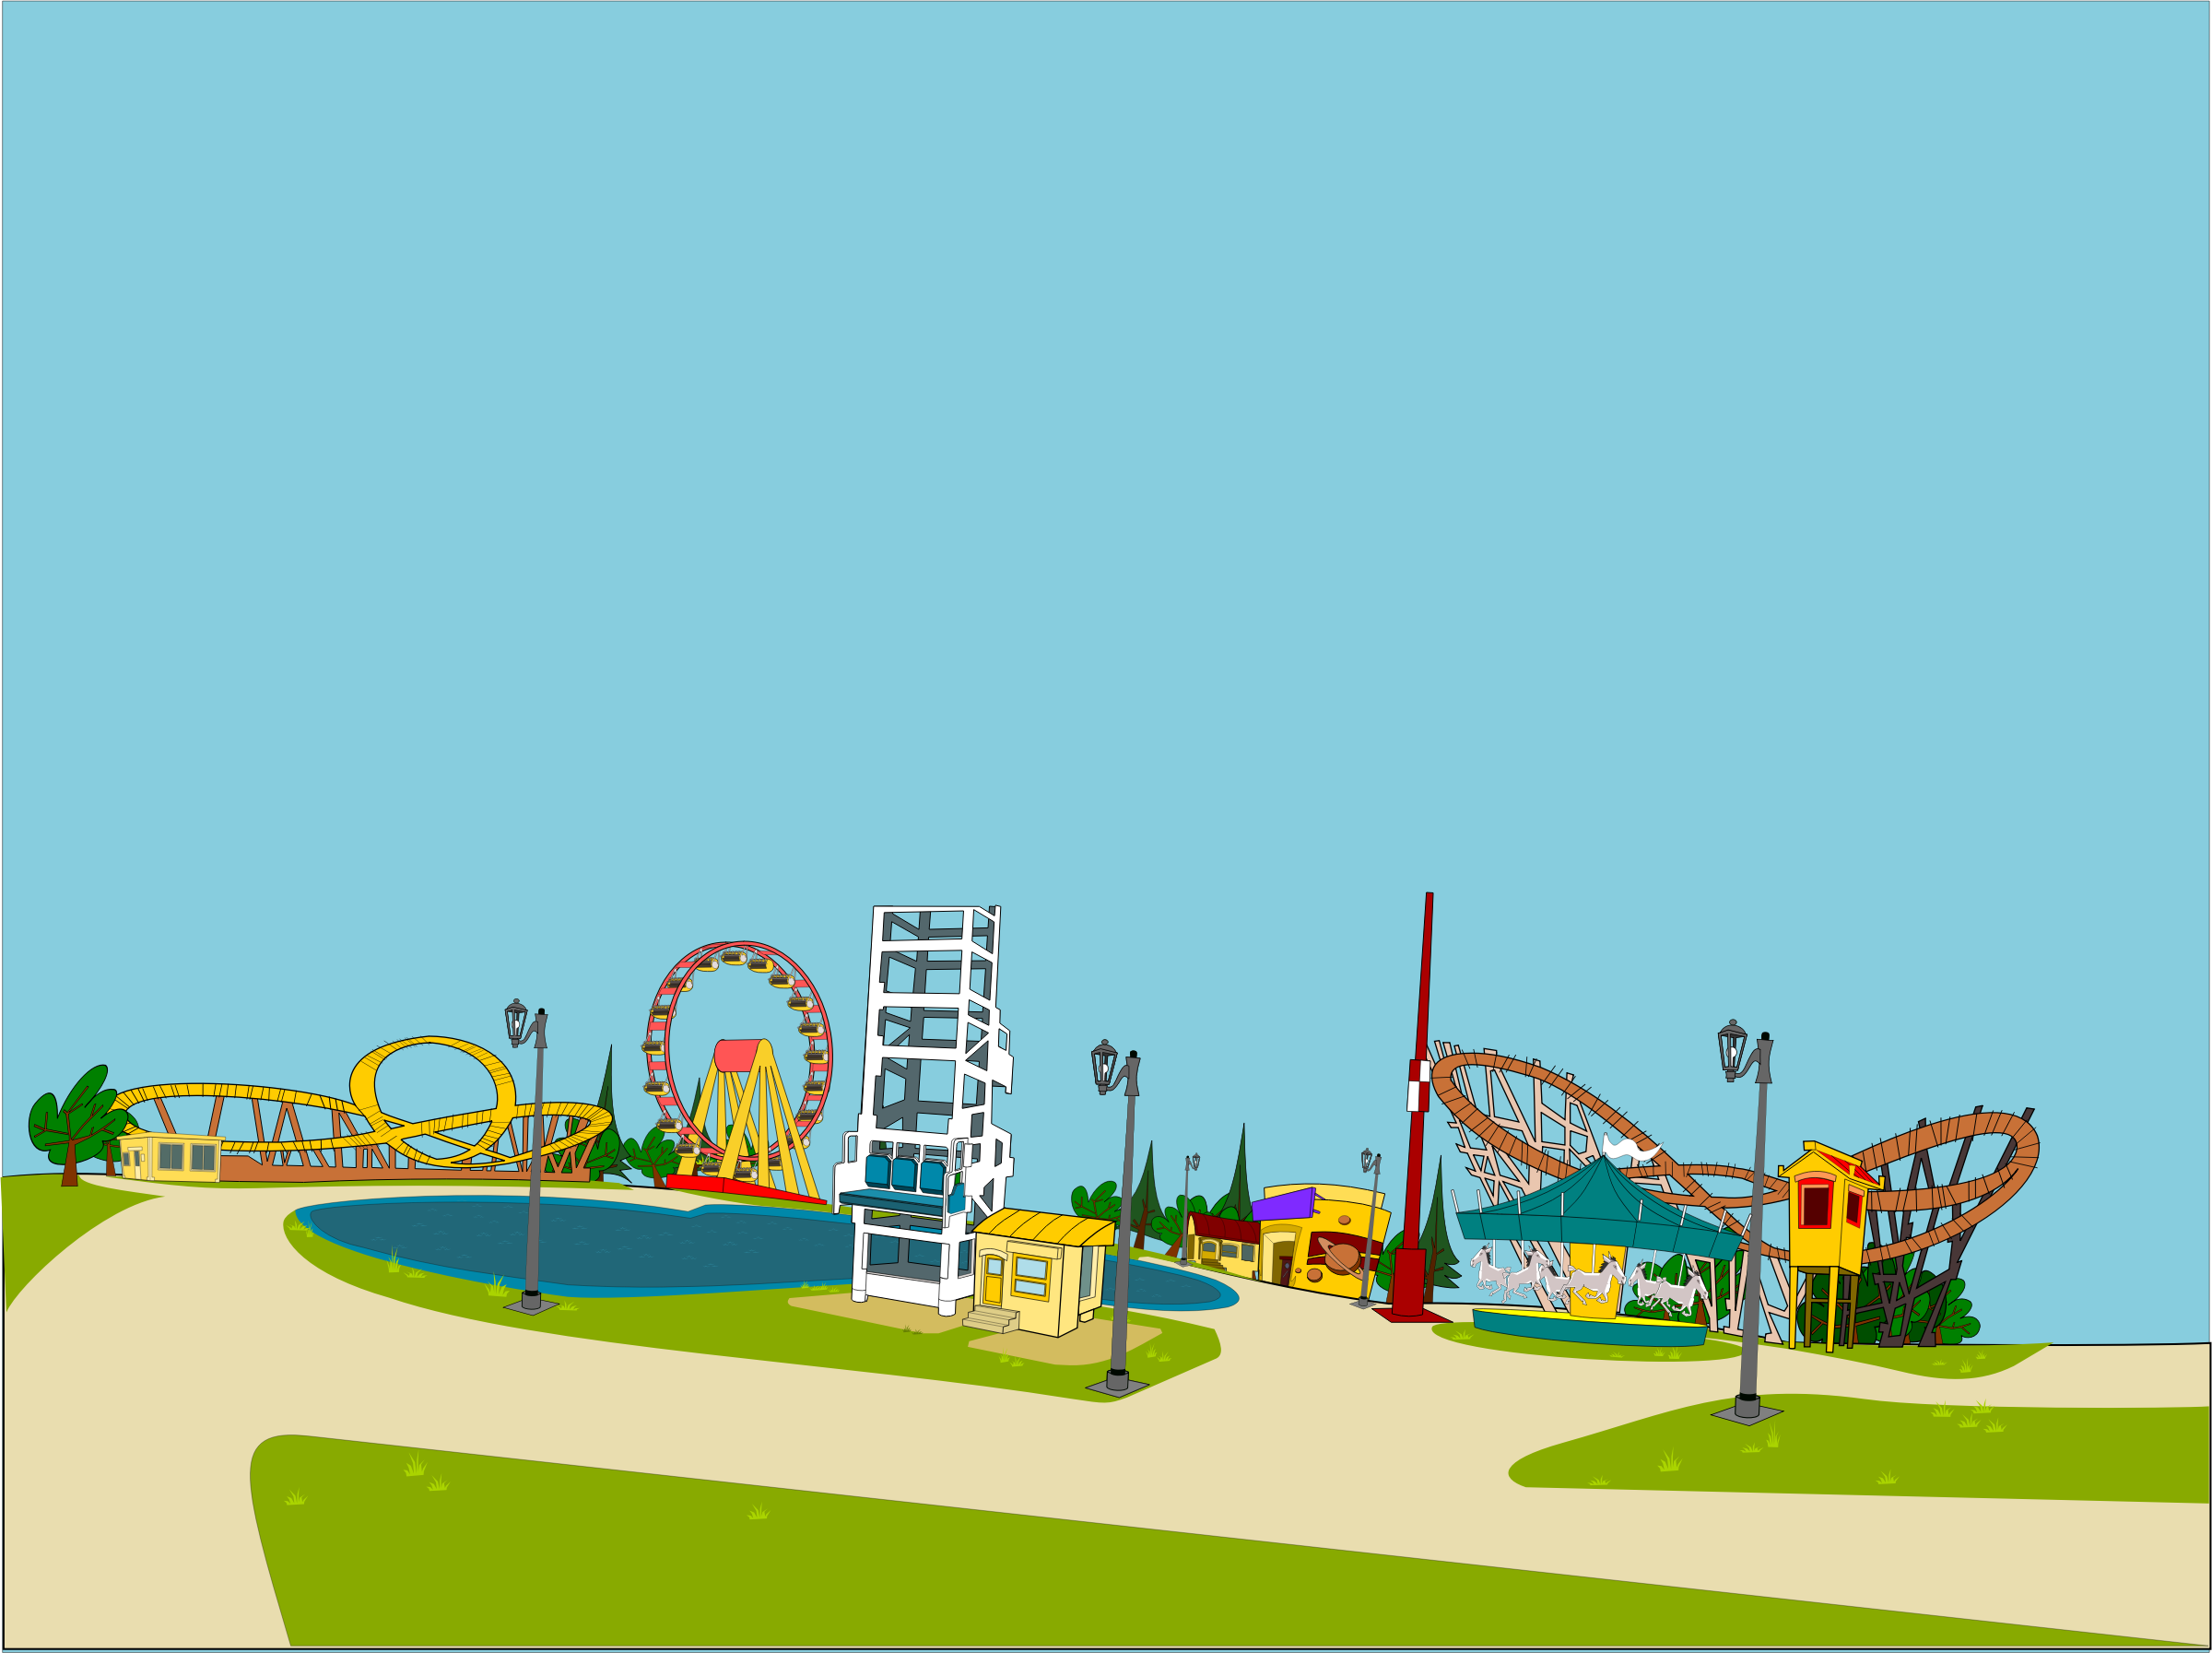 Playground clipart neighbourhood #15